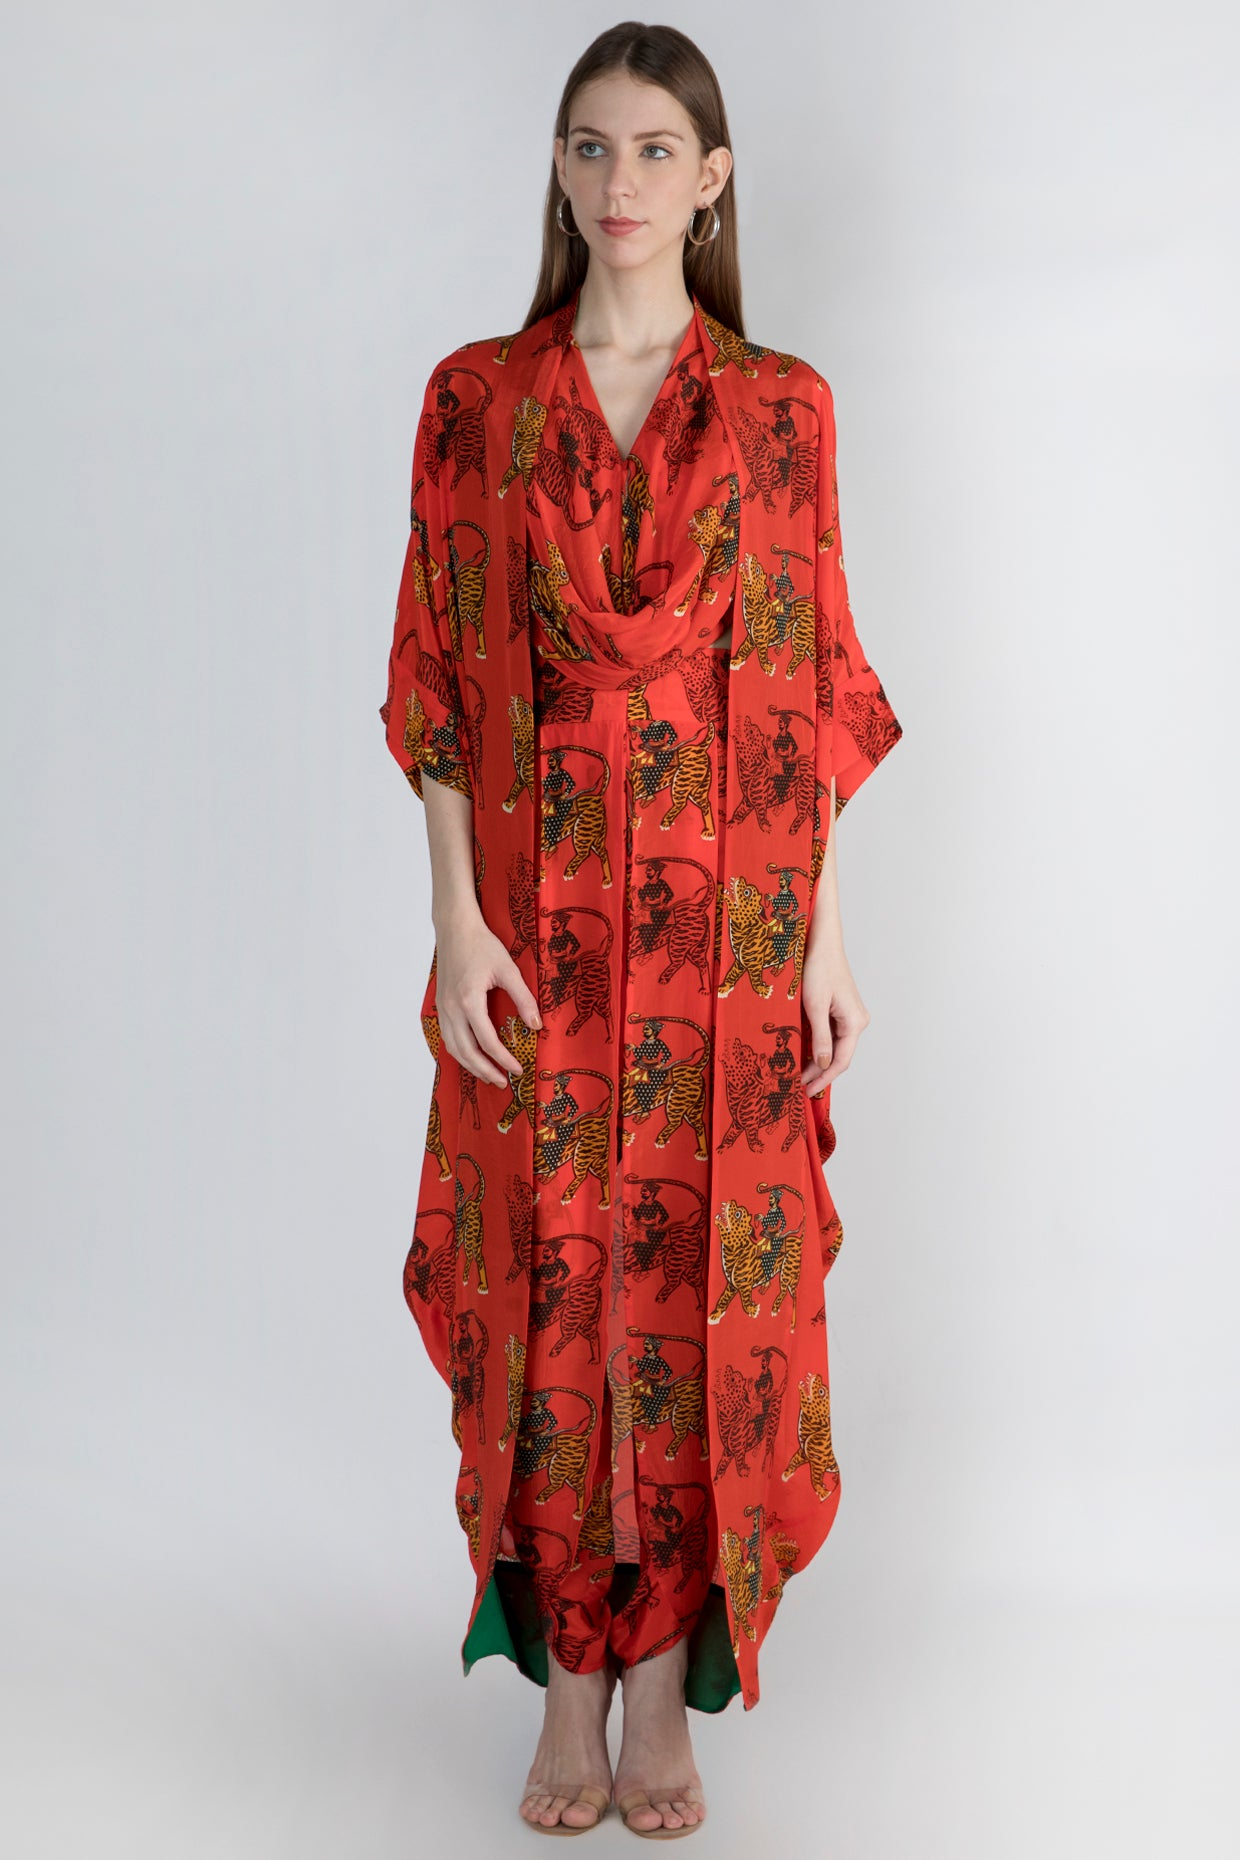 RED SULTAN PRINT COWL TOP ANDDHOTI WITH CAPE - The Grand Trunk